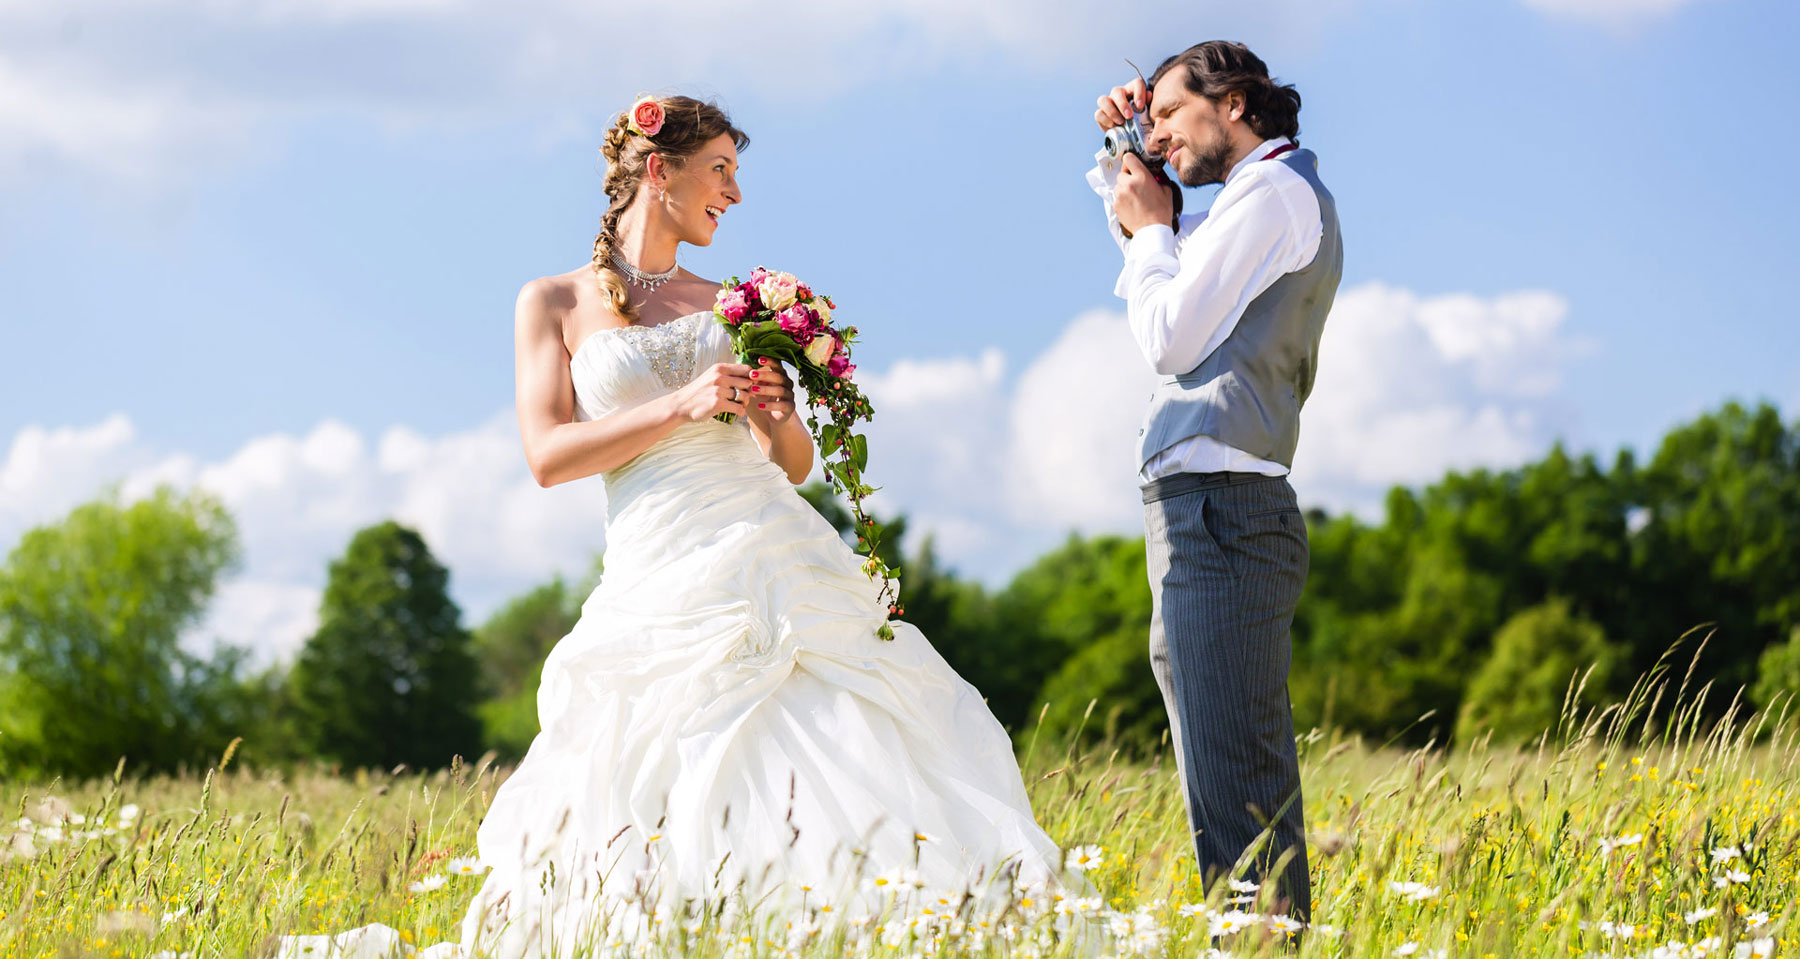 How to choose the right wedding photographer in 5 simple steps